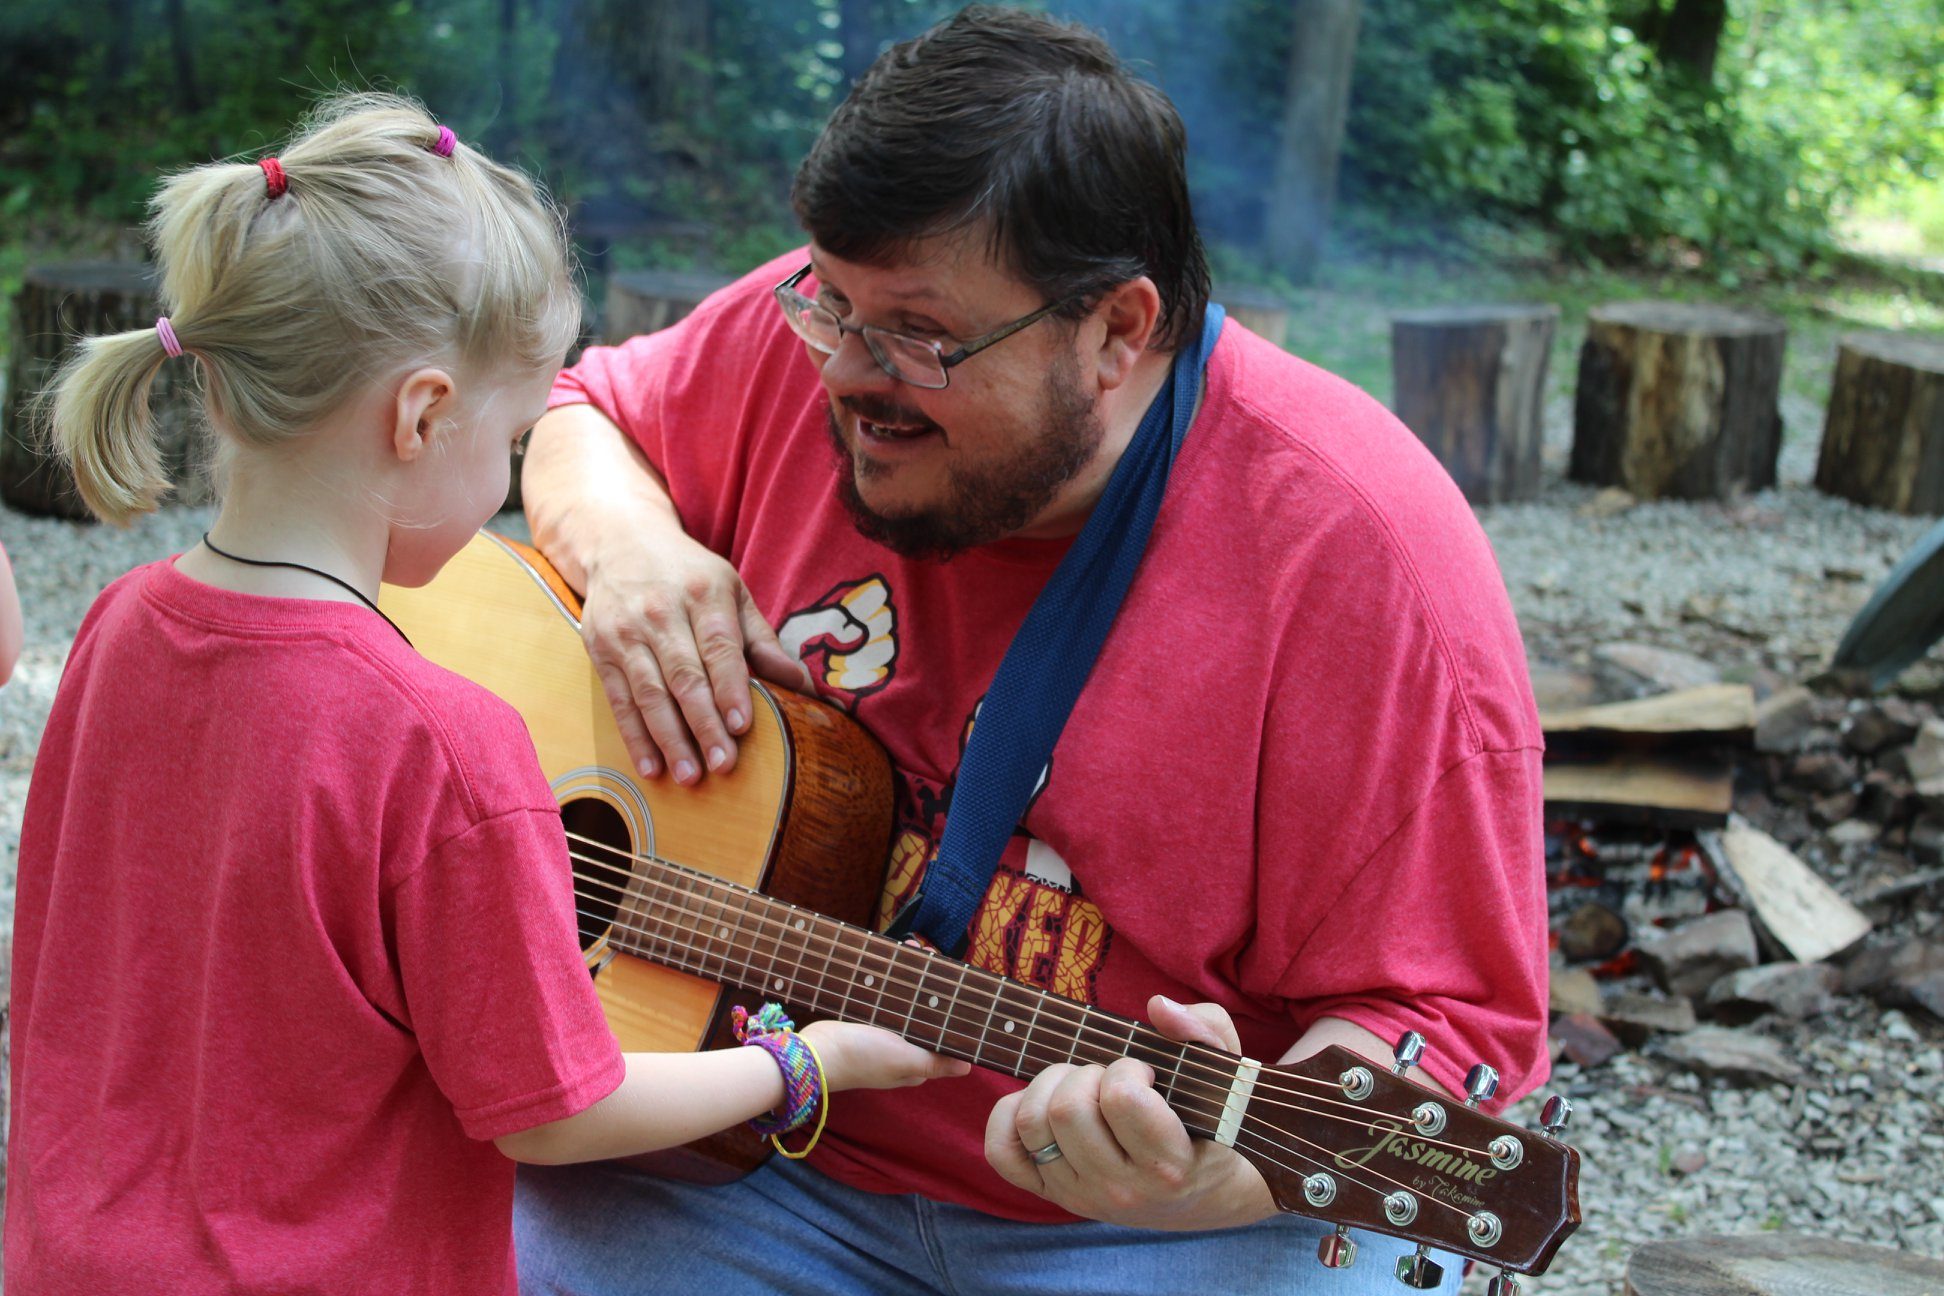 Counselor playing guitar with child at camp